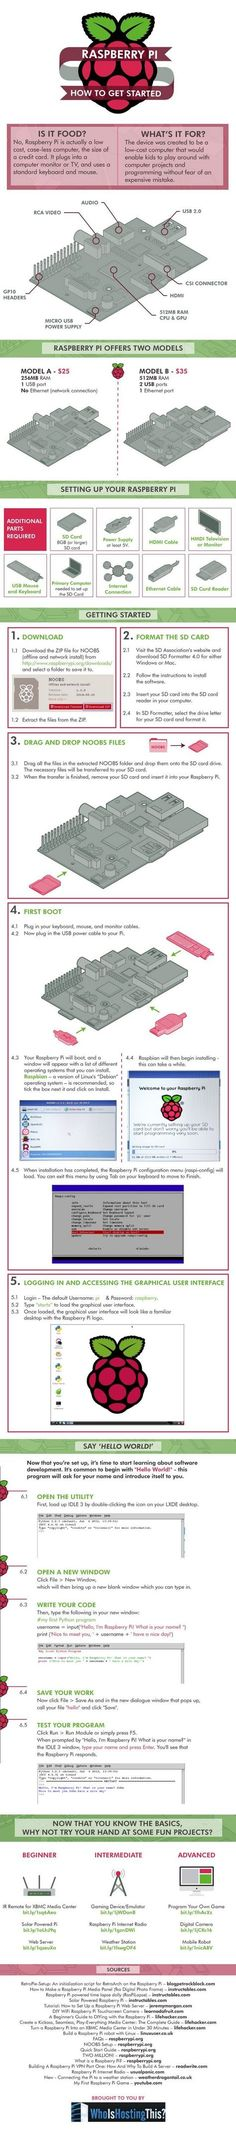 Raspberry Pi: How To Get Started - Imgur